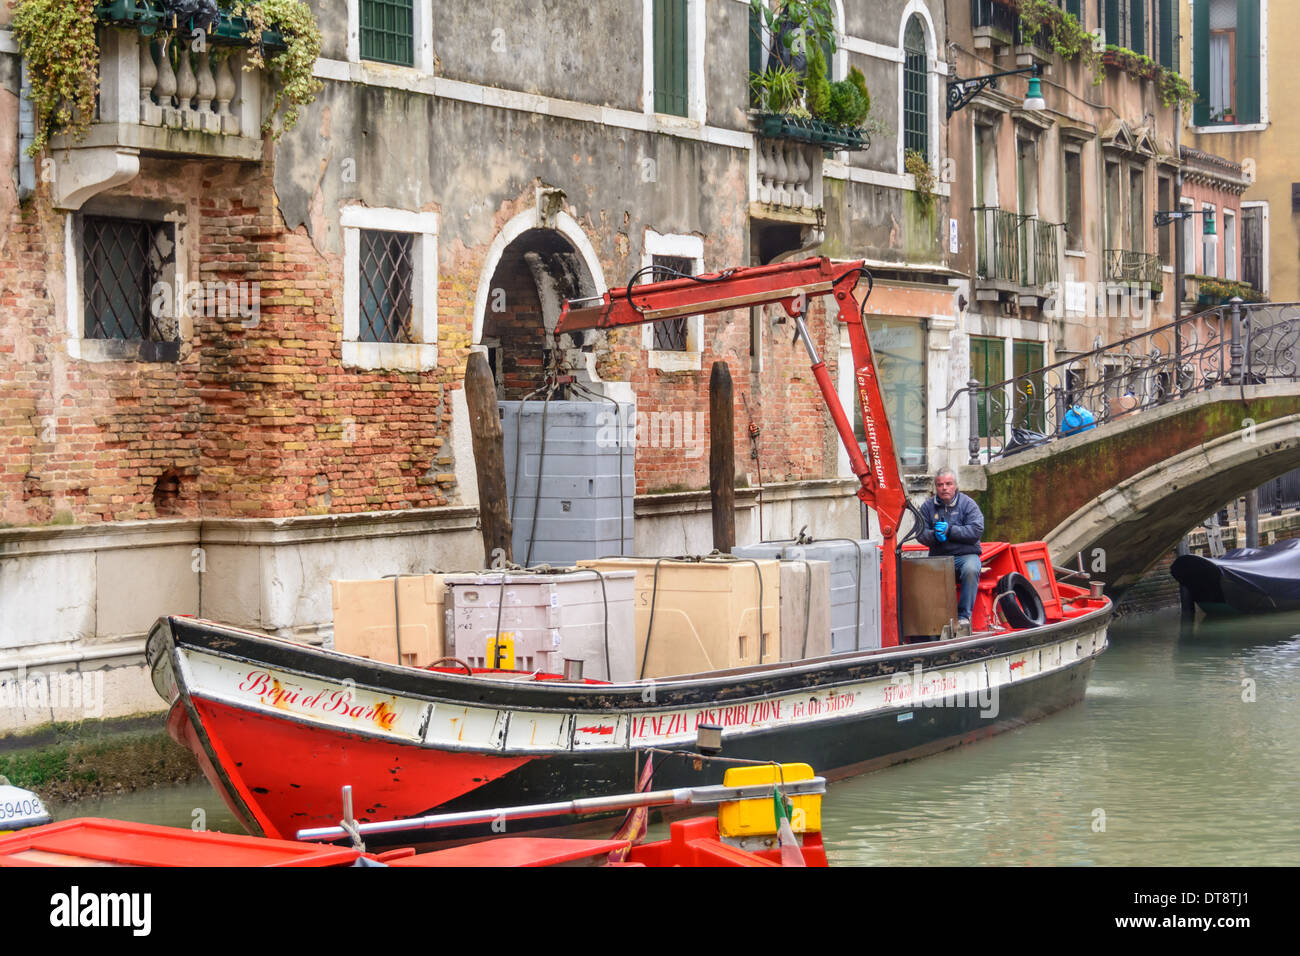 Venice, Italy. Freight-laden barge with mounted crane in a narrow Venetian canal unloading containers. Stock Photo